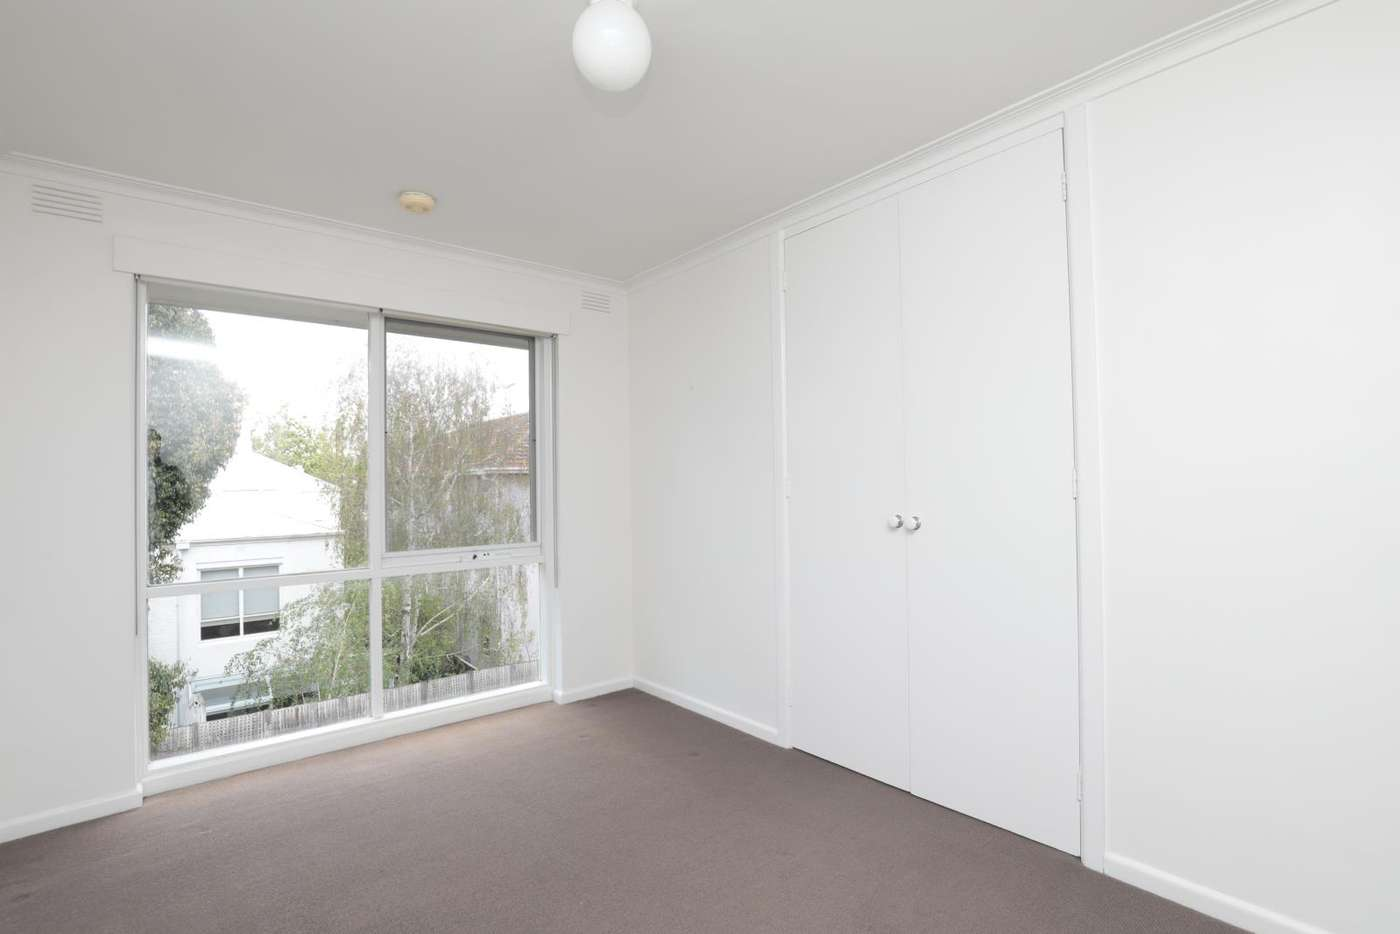 Sixth view of Homely unit listing, 9/103 Osborne Street, South Yarra VIC 3141